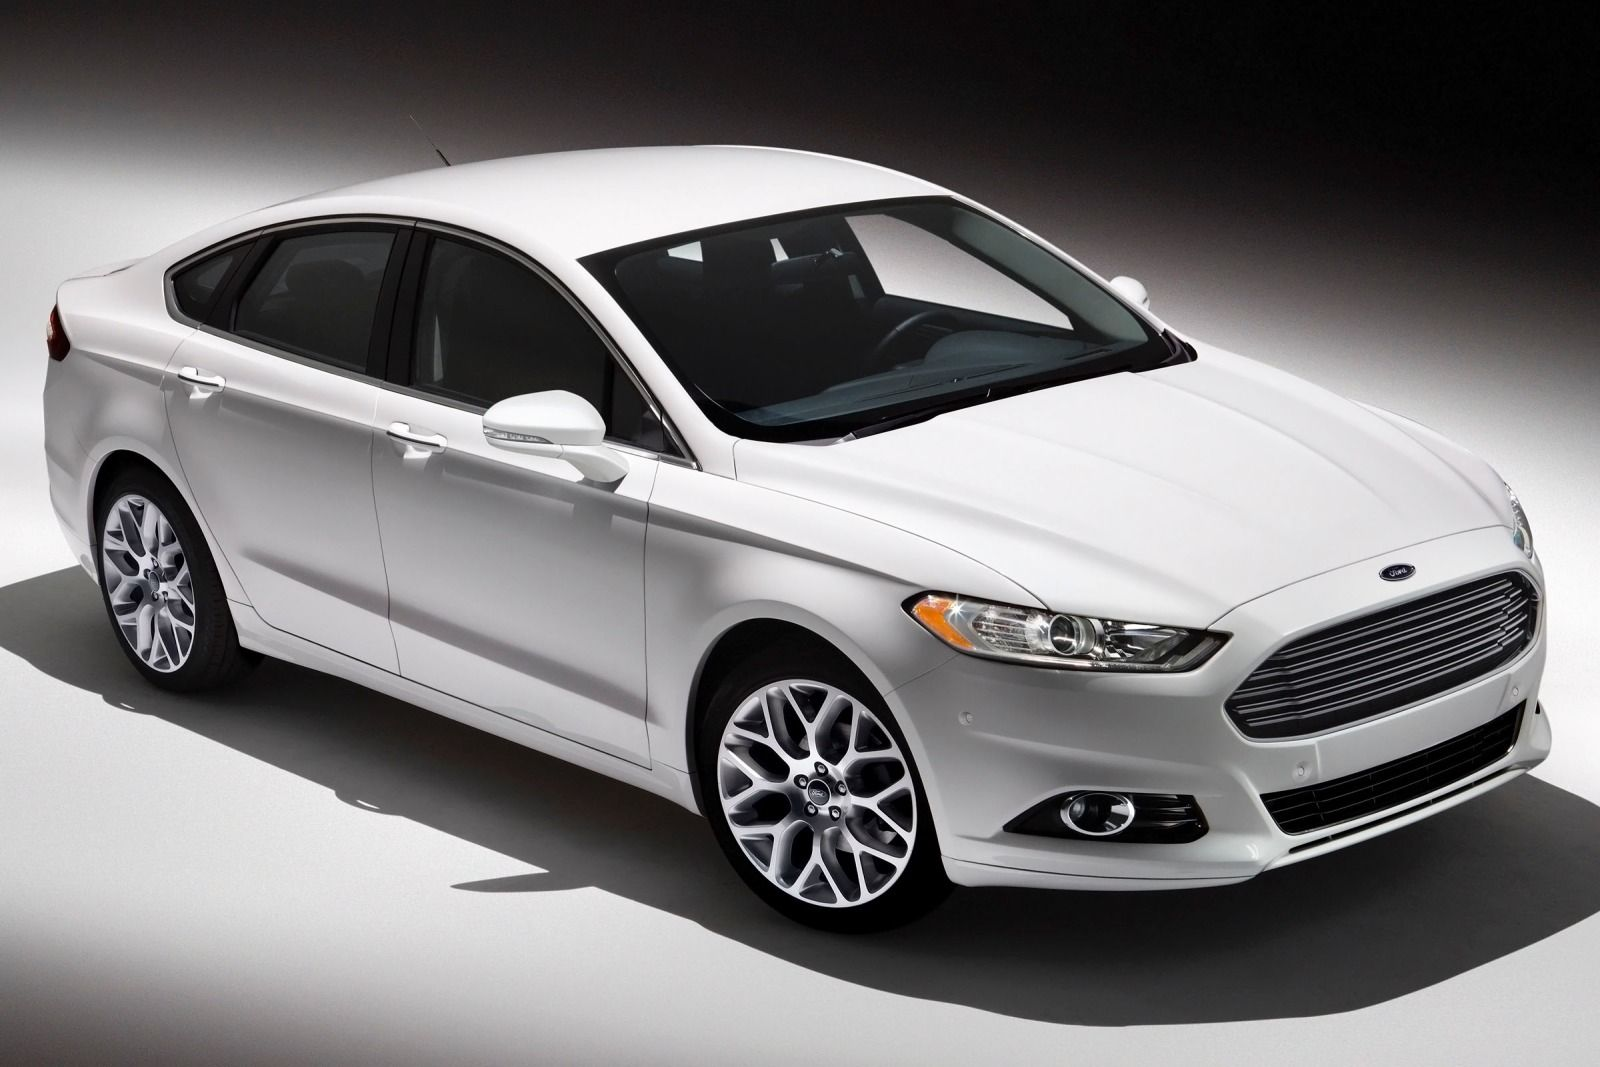 Ford Mondeo & Ford Mondeo | Rent a car Otopeni u2013 Car hire Bucharest airport markmcfarlin.com